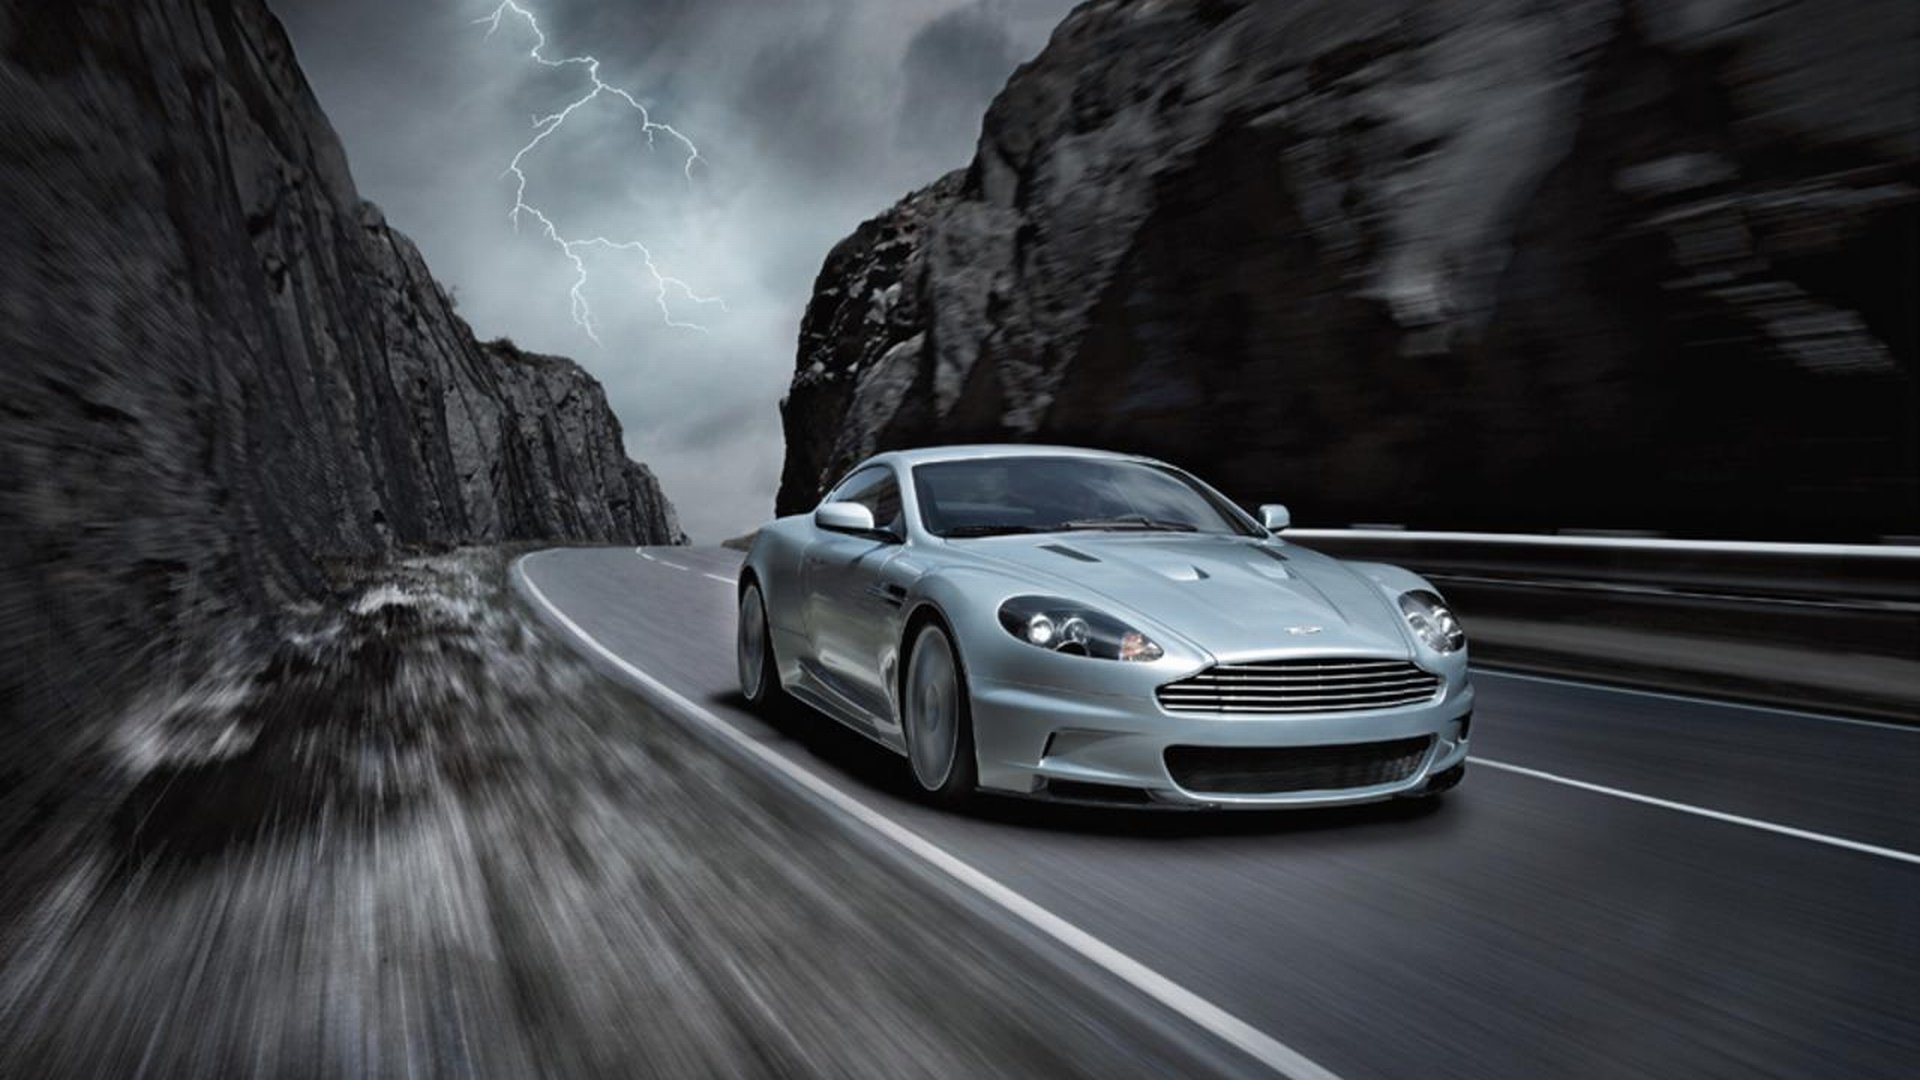 Aston Martin One 77 Wallpapers Hd For Desktop Backgrounds